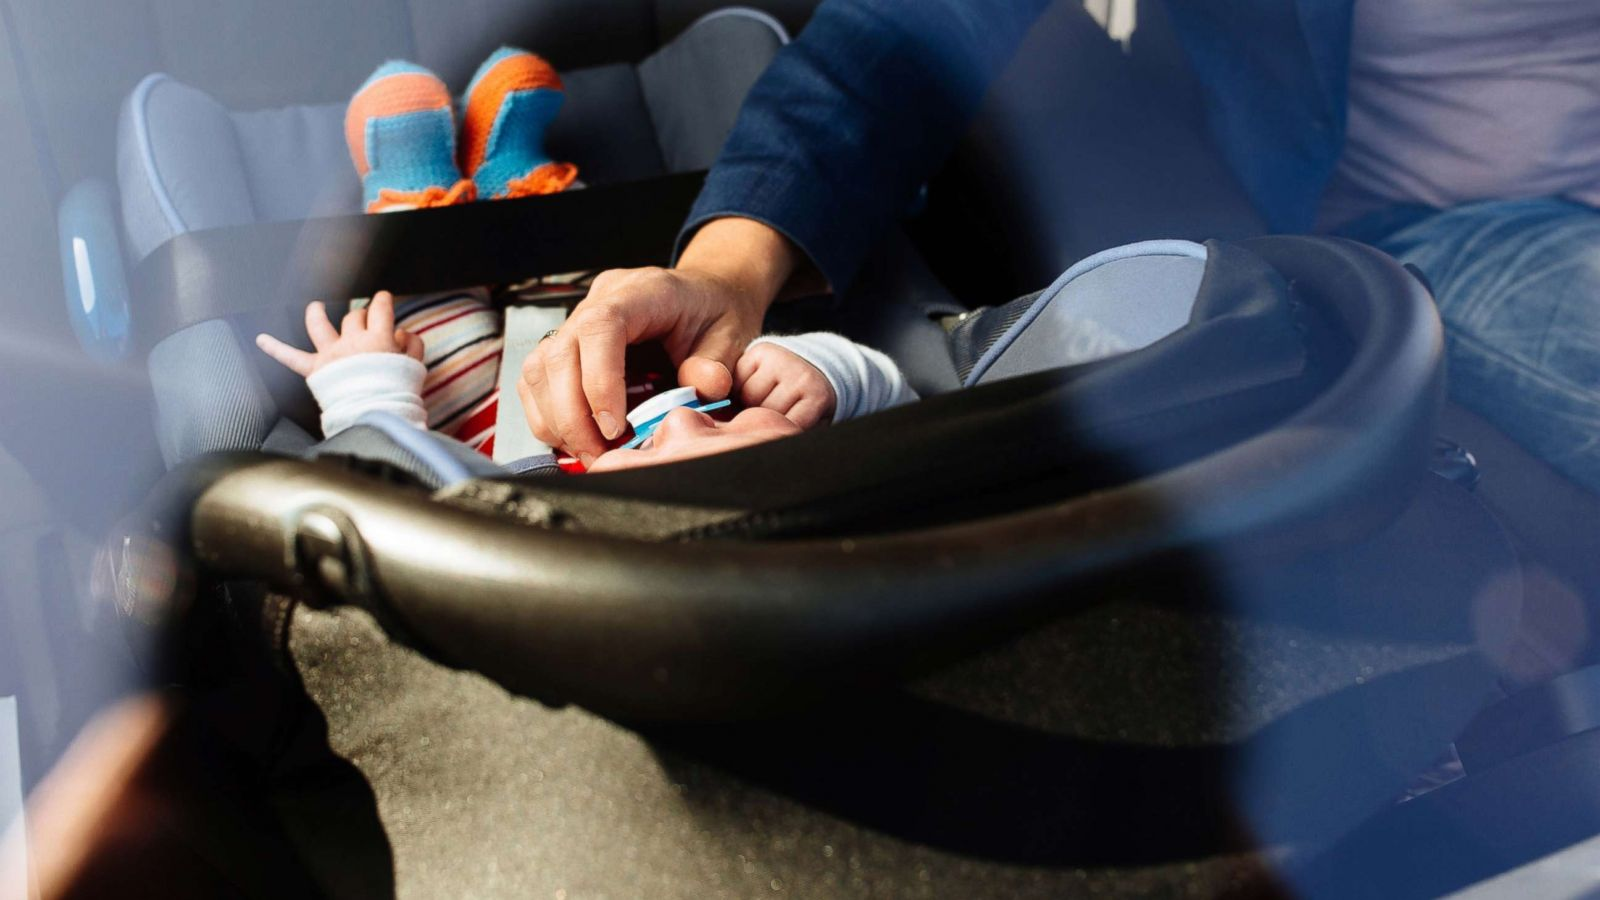 Kids Should Stay In Rear Facing Car Seats As Long As Possible New